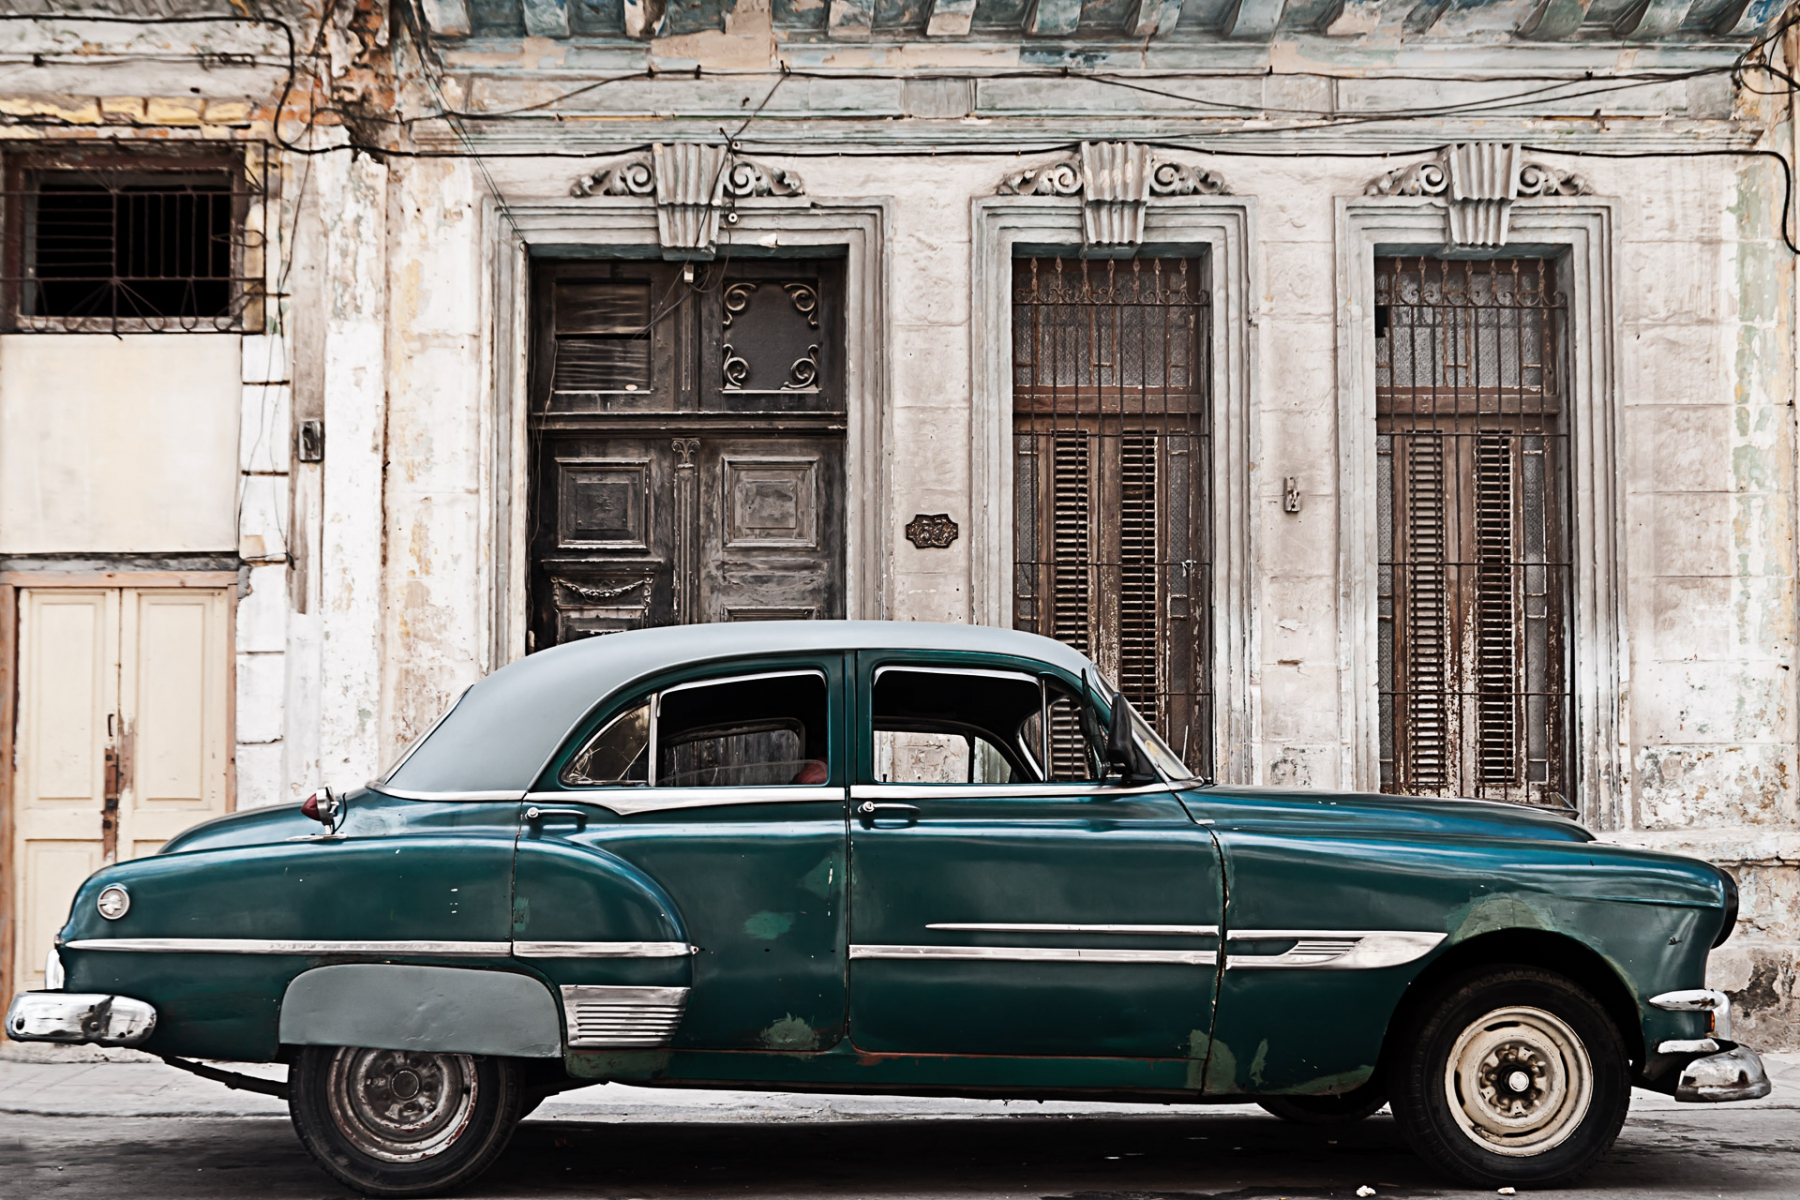 The beauty of decay in Centro Habana